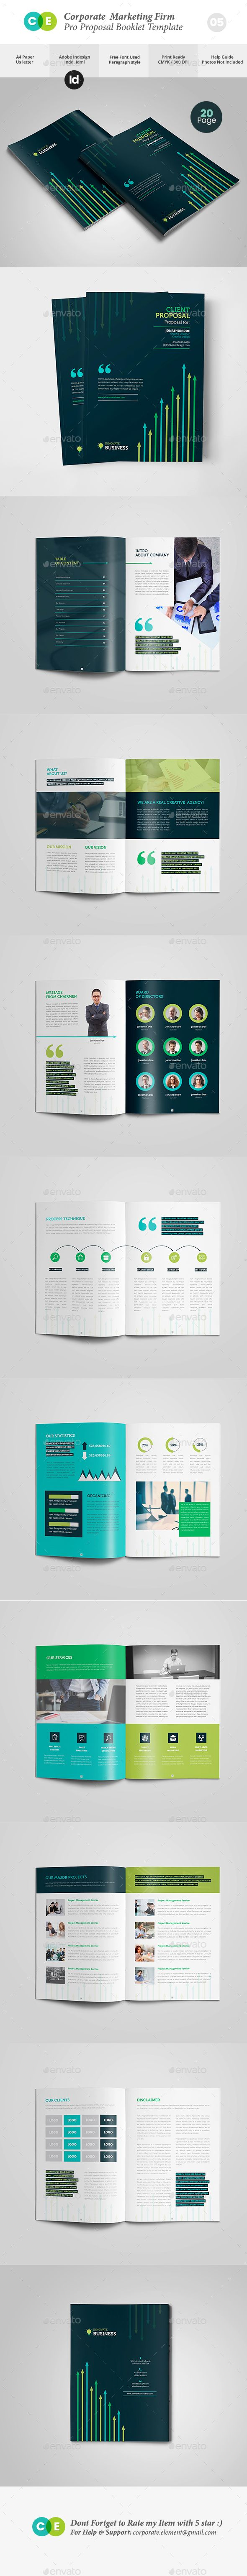 Corporate Marketing Firm Pro Proposal Document V05